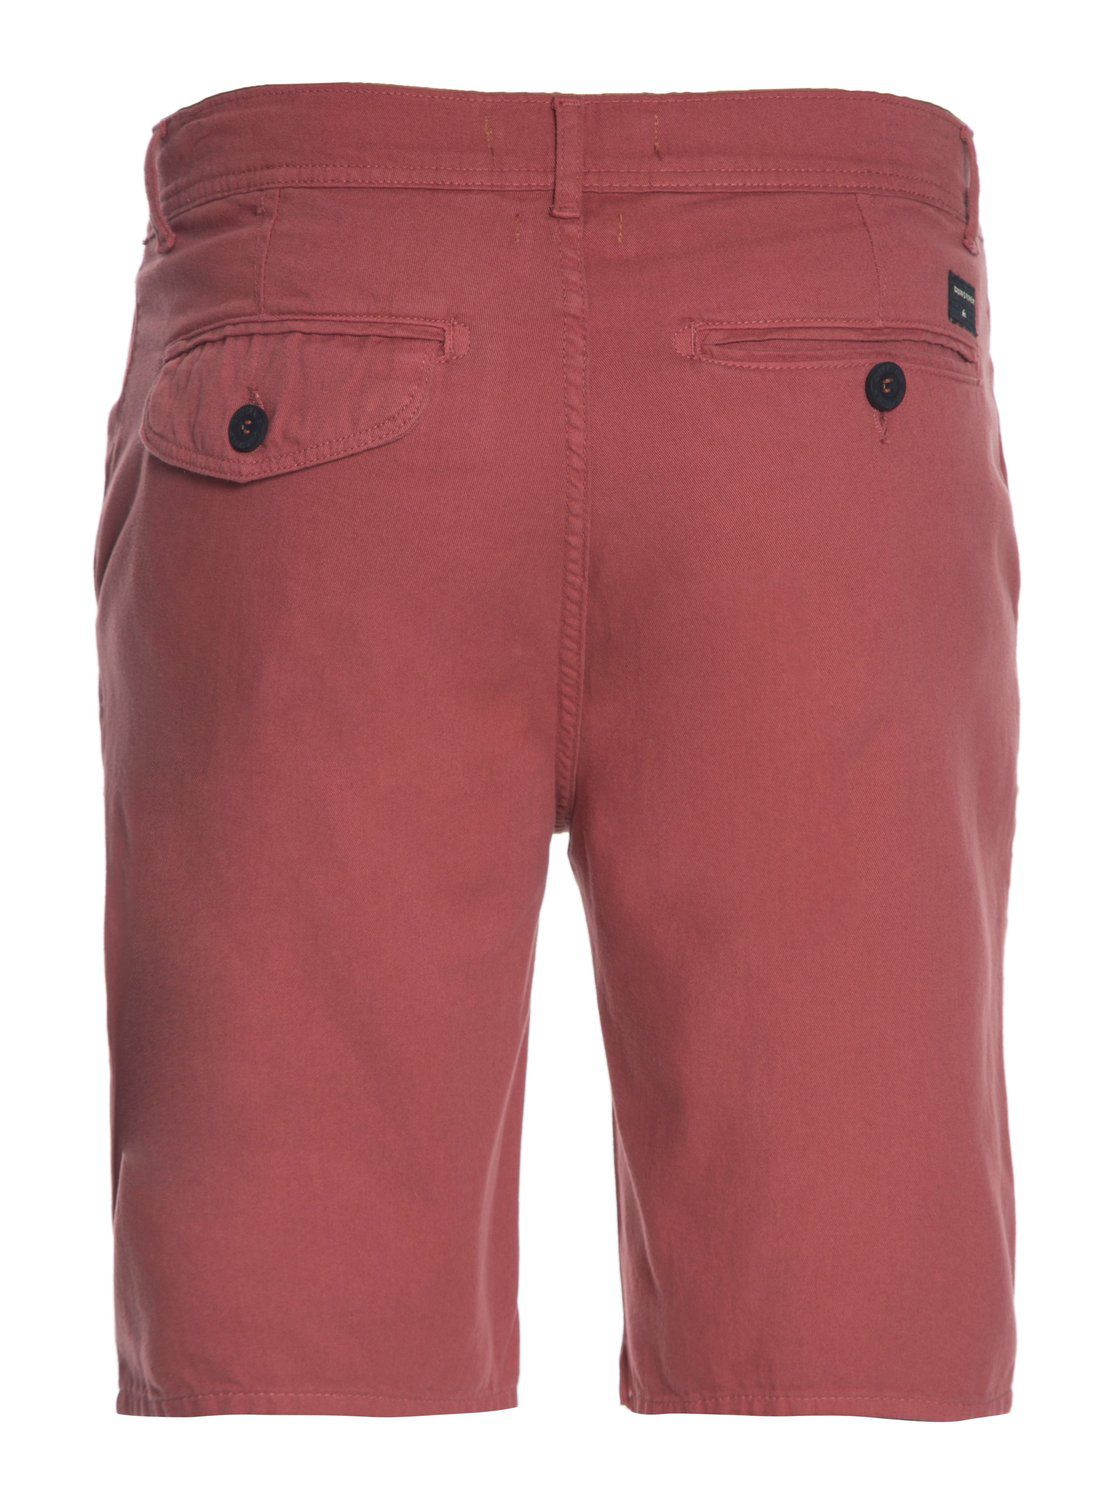 Bermuda Quiksilver Walk Chino Color